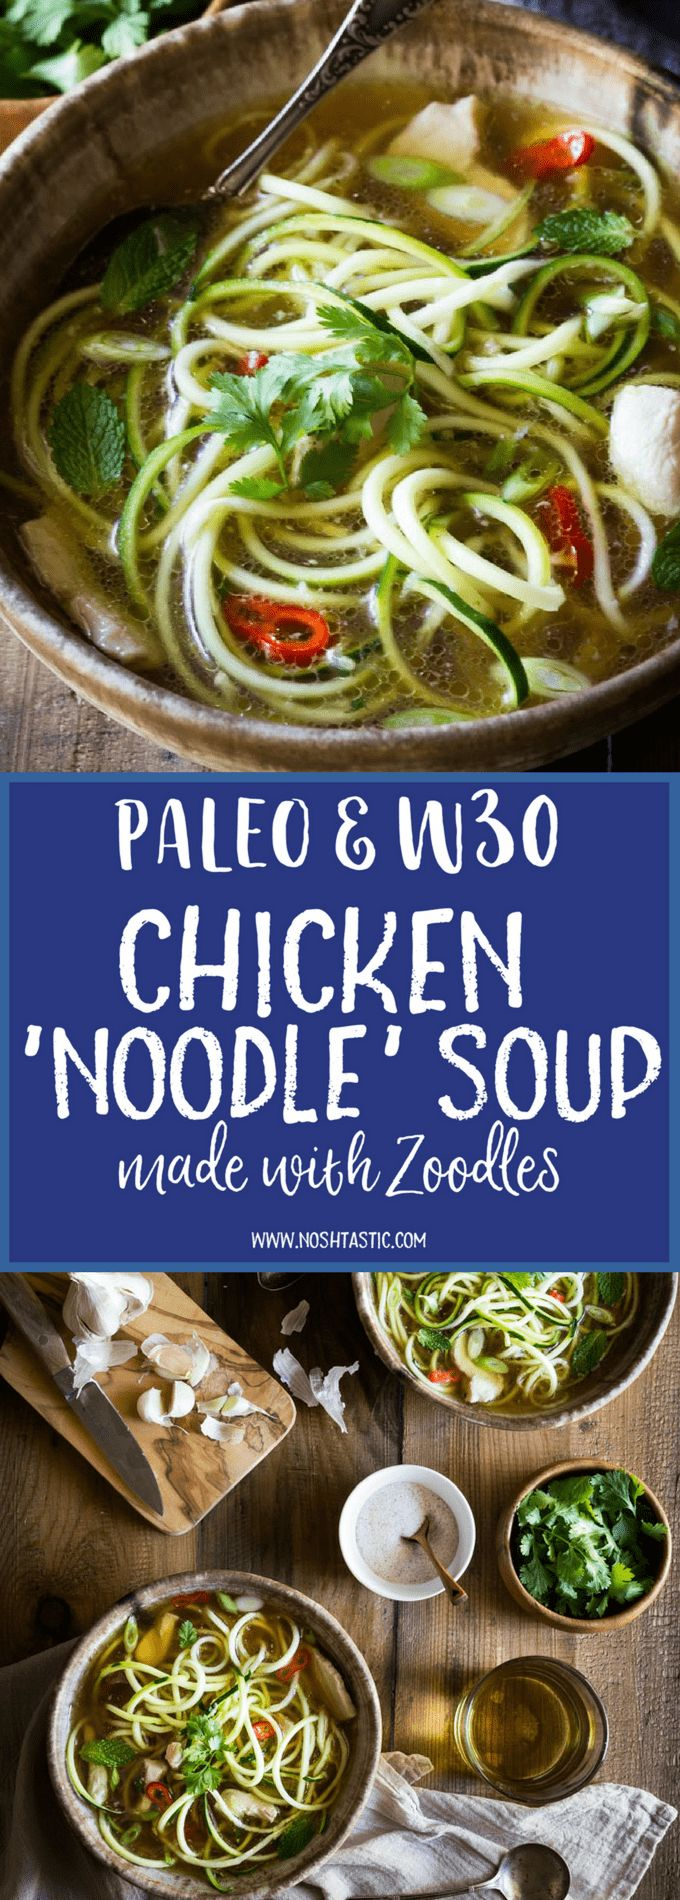 My Paleo Chicken Noodle Soup with zucchini noodles (or zoodles) can be made in 20 MINUTES! It's packed with flavor, is healthy, low carb, whole30 and gluten free too!